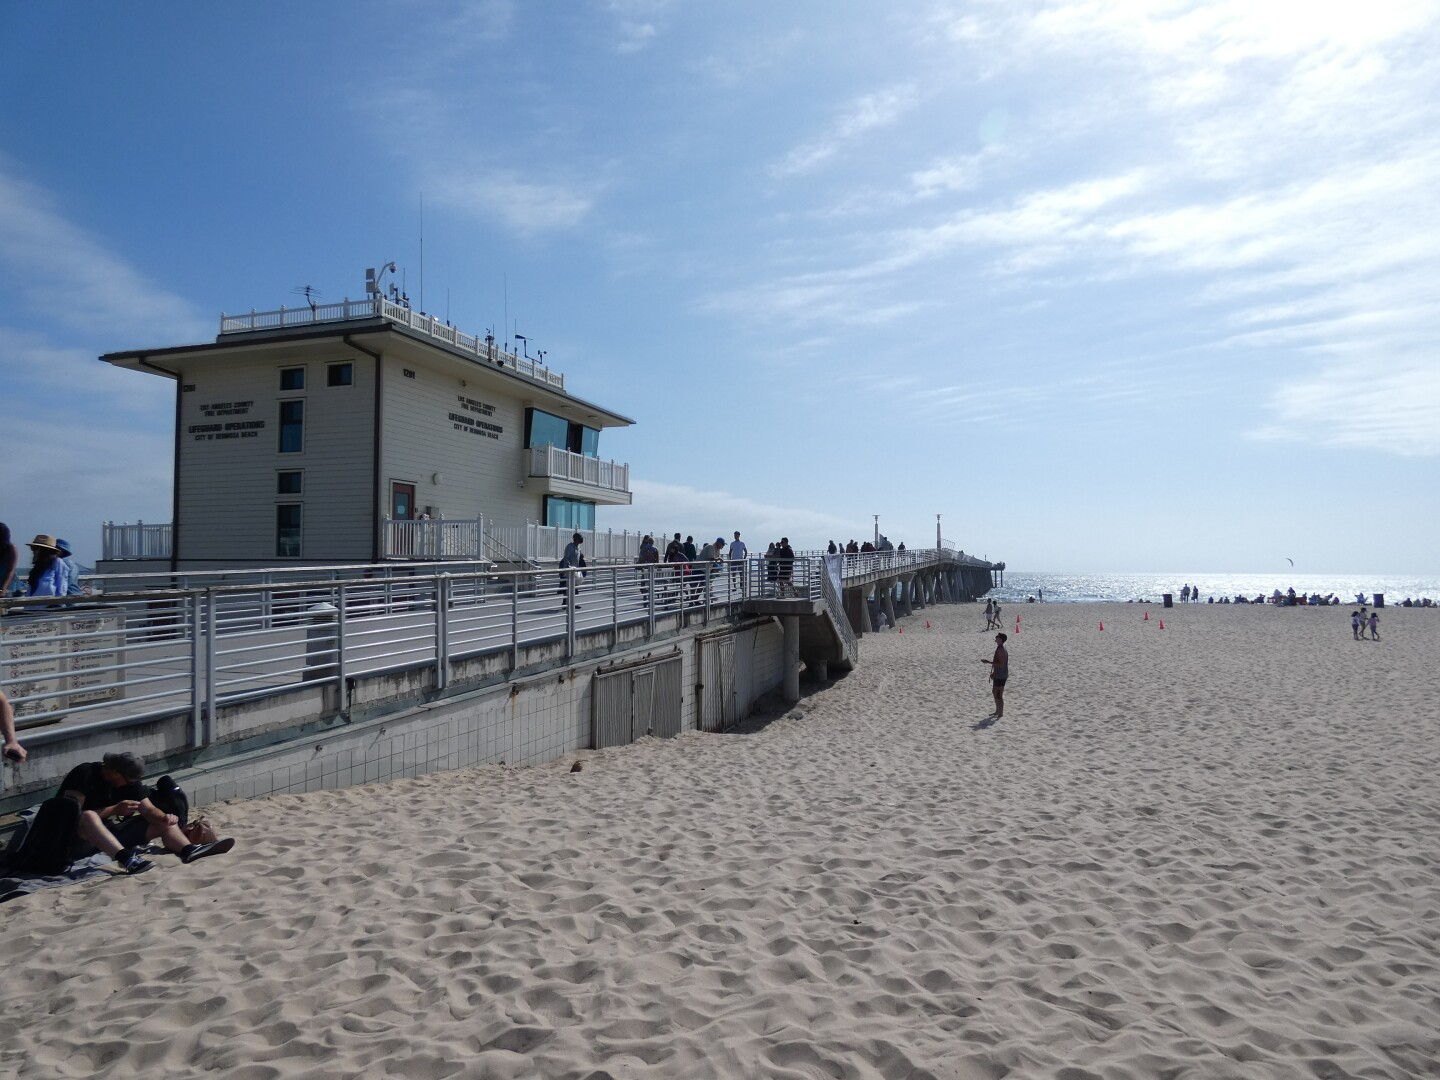 Hermosa Beach Pier made up of now concrete extends out to the beach.